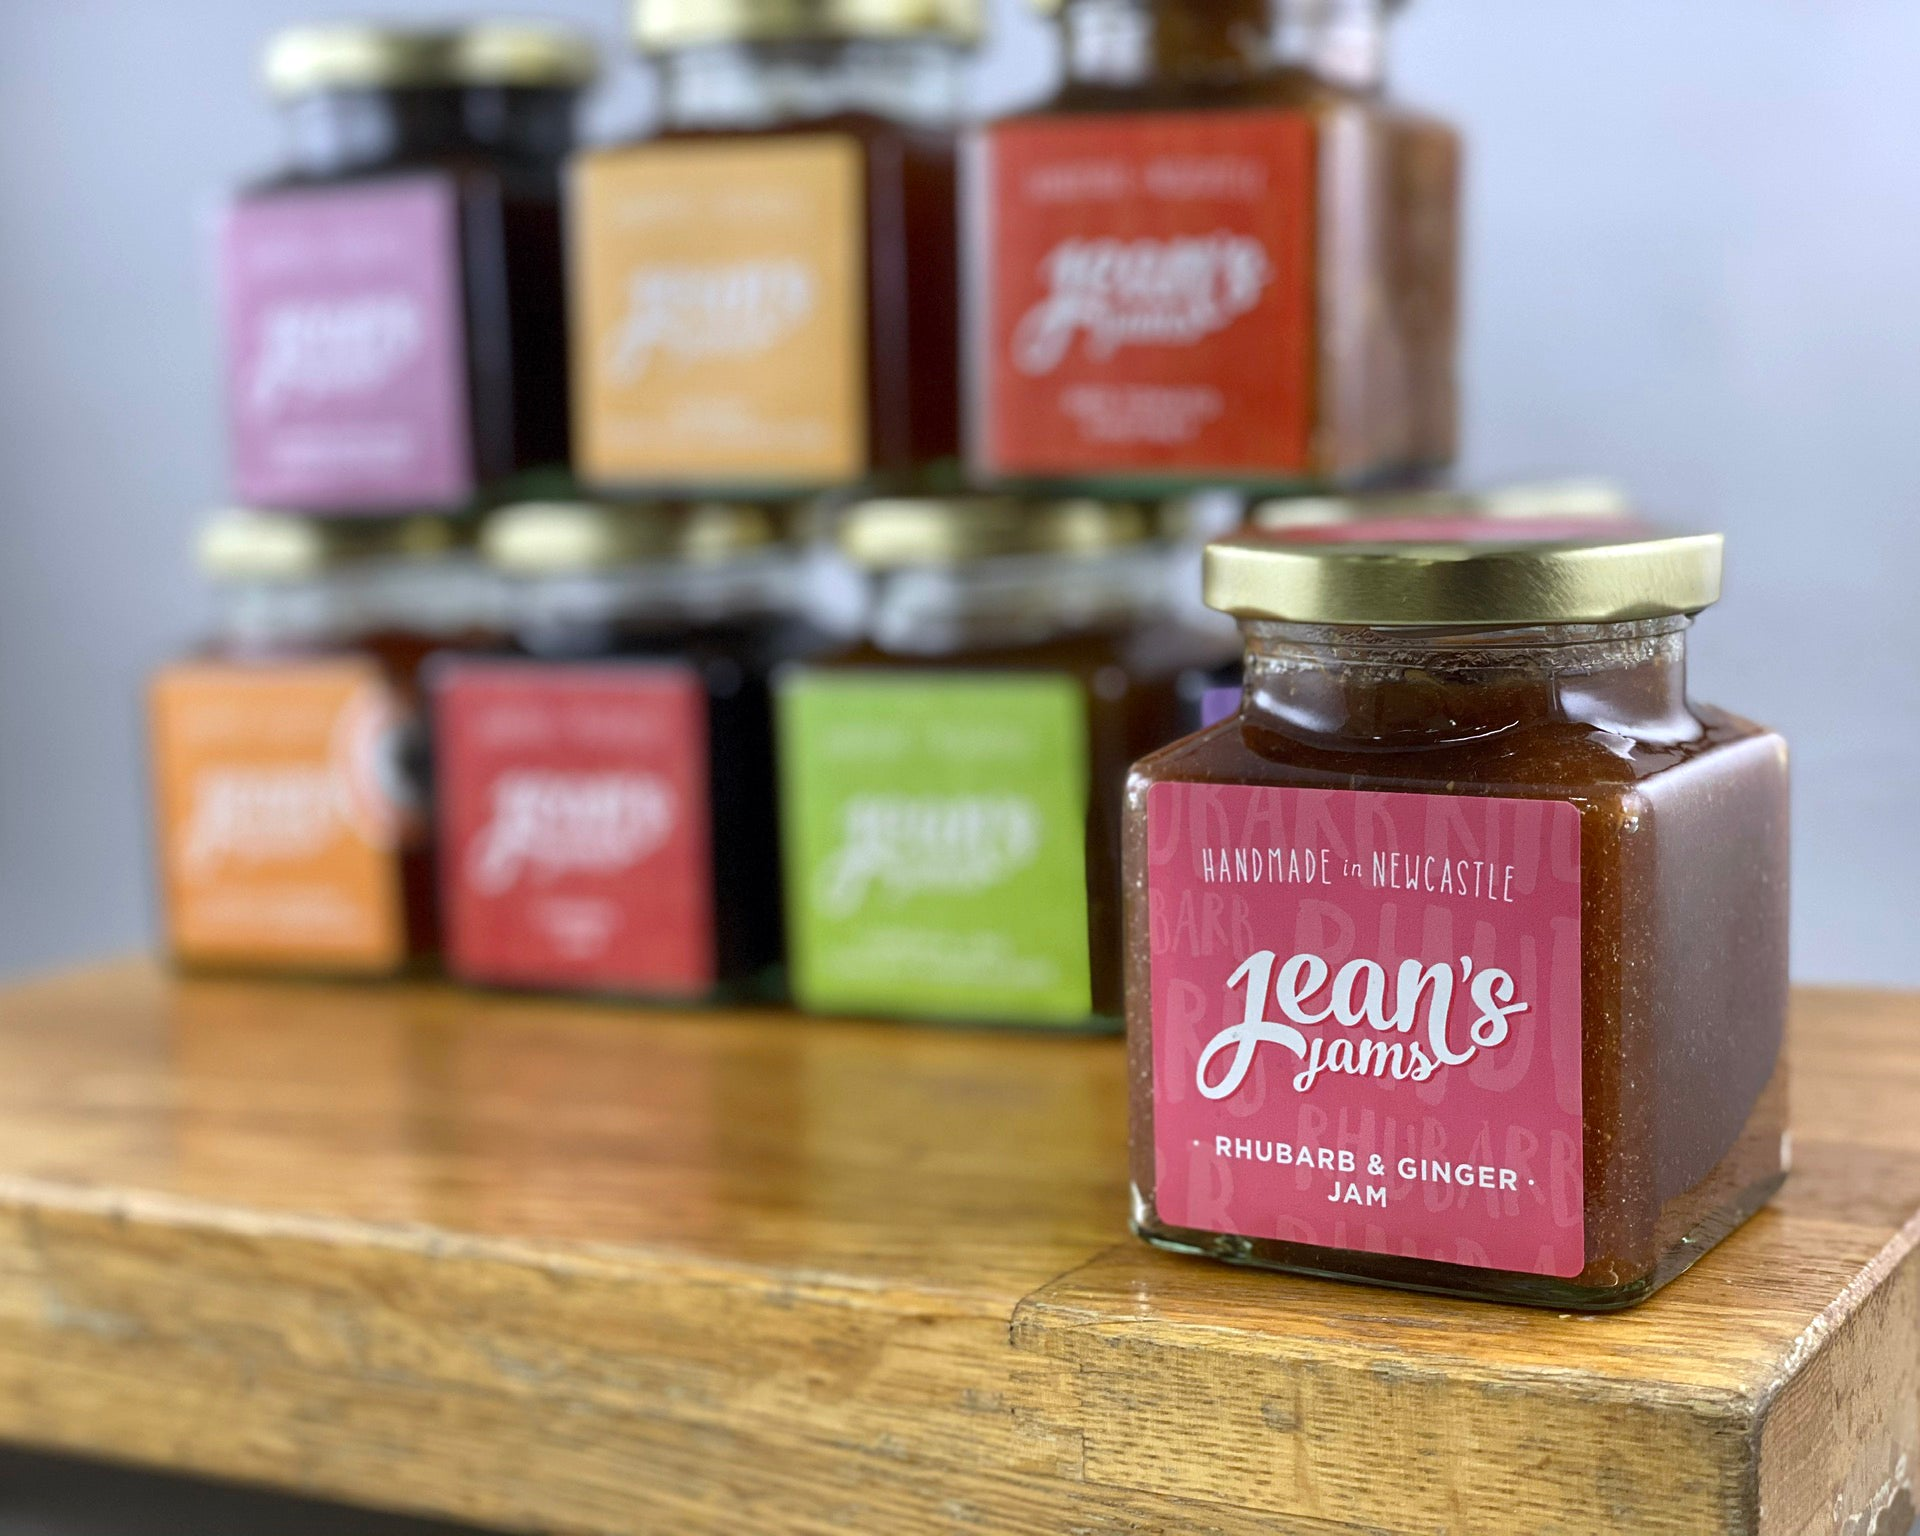 French Oven: Jean's Jams 'Rhubarb and Ginger Jam'